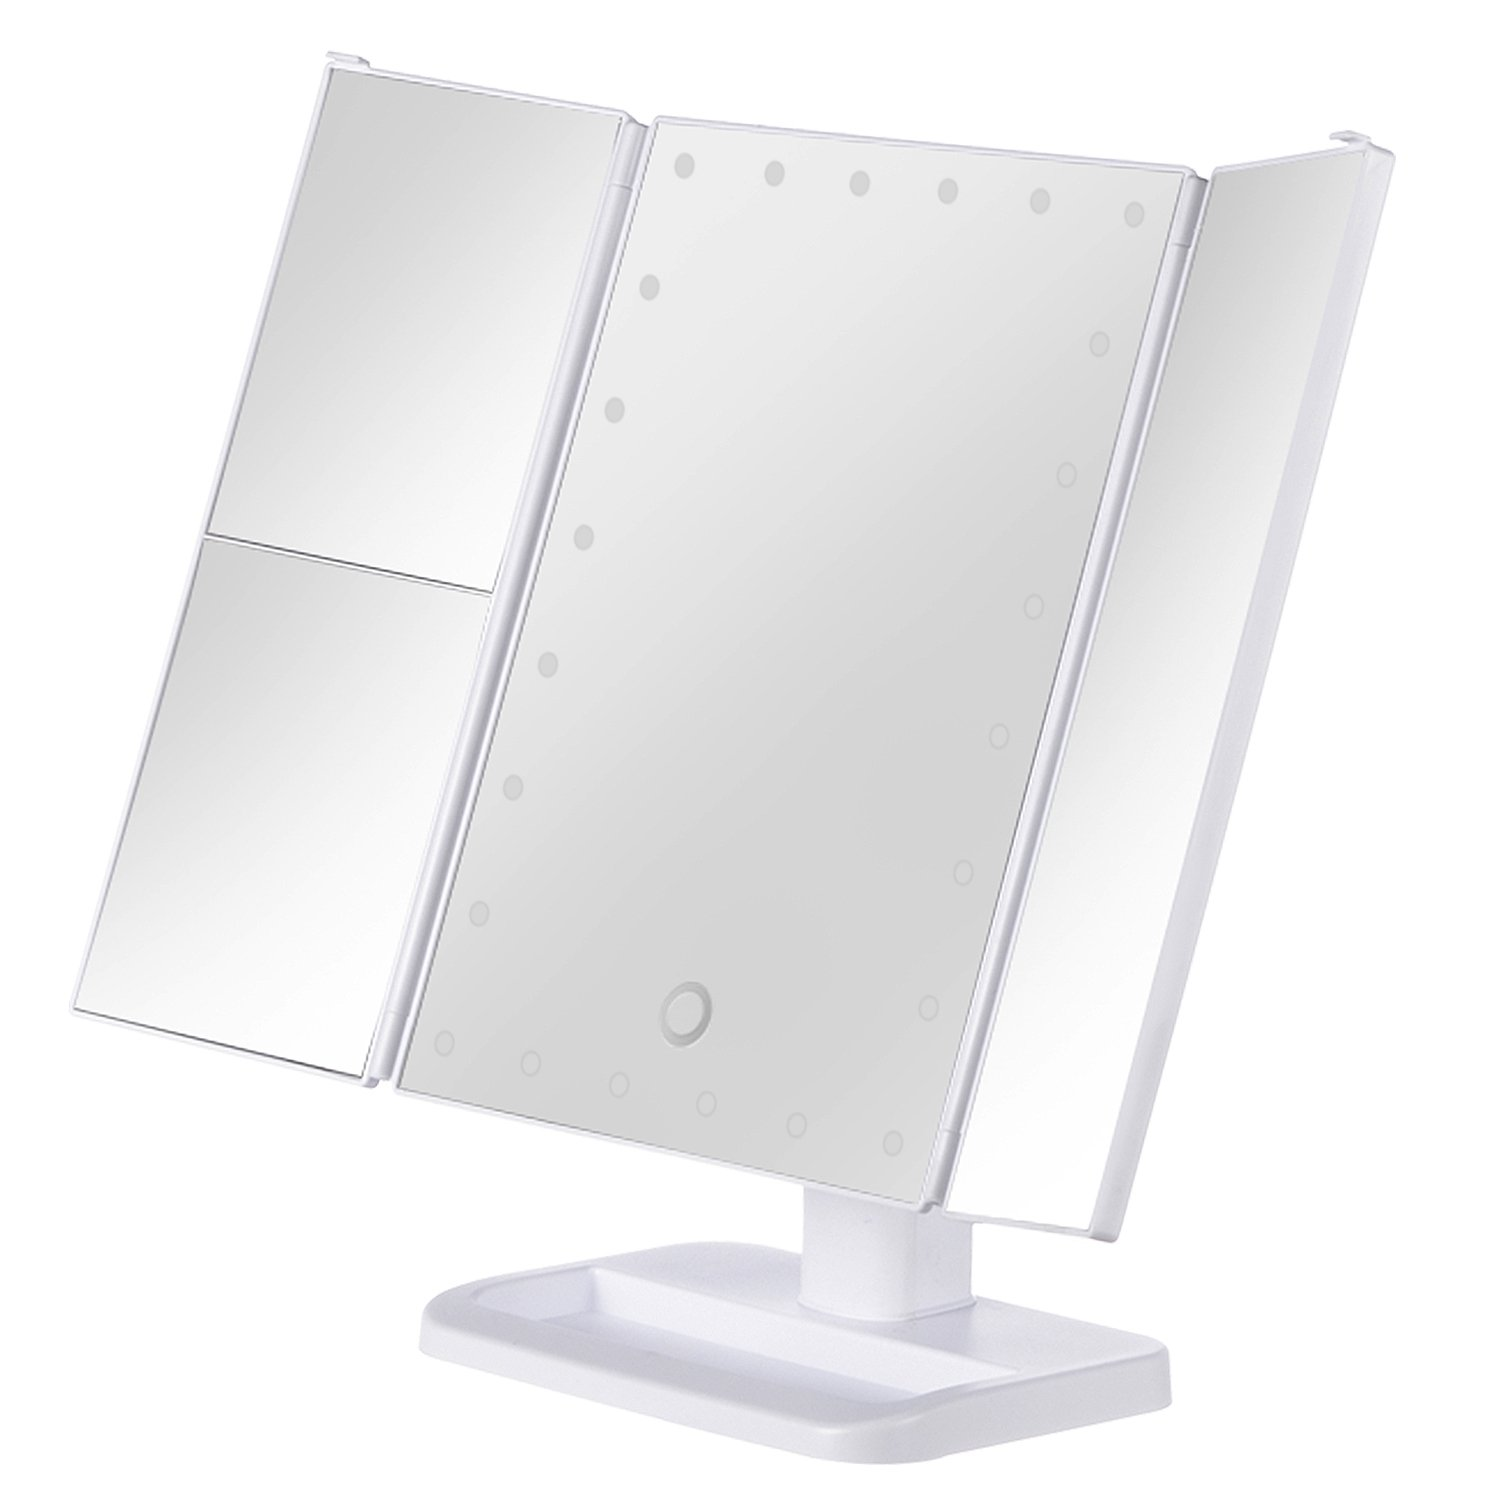 KingKKong Makeup Mirror with 21 LED Lights - 3X/2X Magnifying Makeup Vanity Mirror with Touch Screen, Dual Power Supply, 180° Adjustable Rotation, Countertop Cosmetic Mirror (White) KingKKong Direct